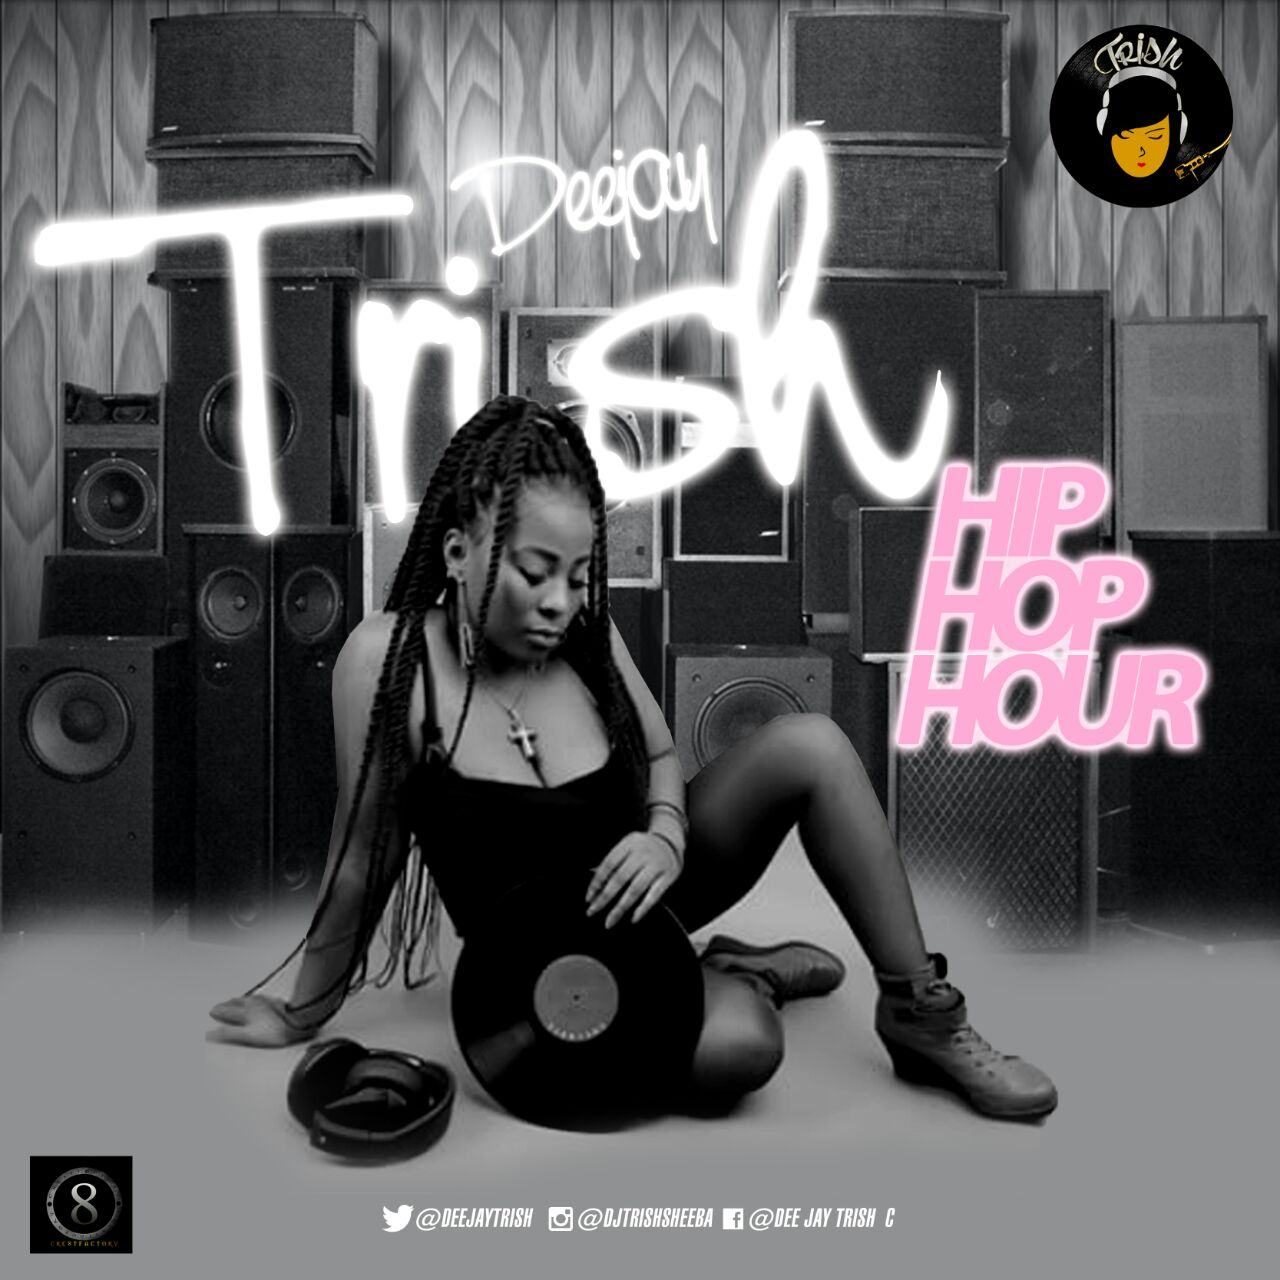 Deejay Trish - Hip-hop Hour [MixTape]